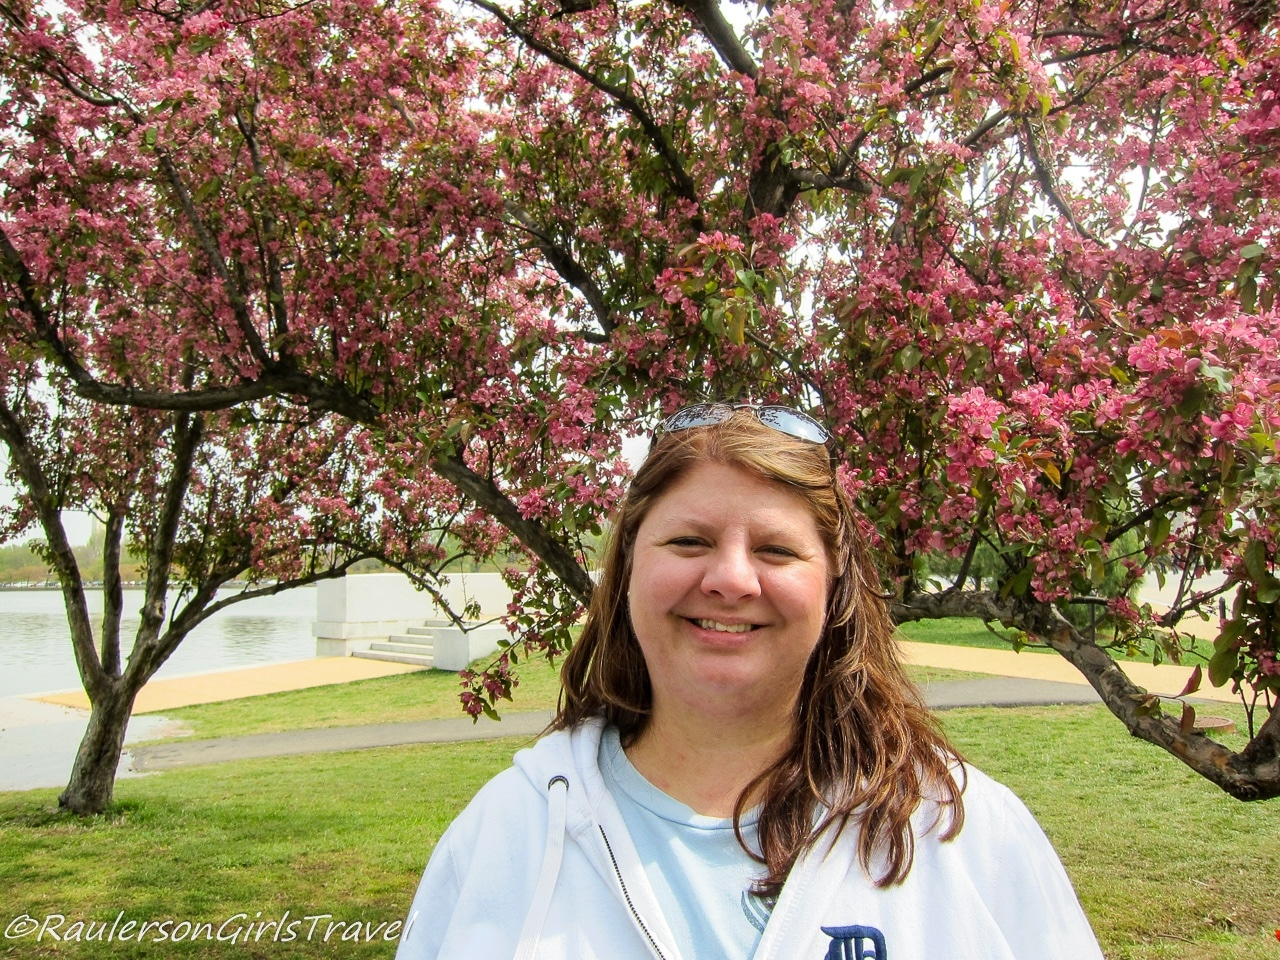 Heather smiling with Cherry Blossom Trees